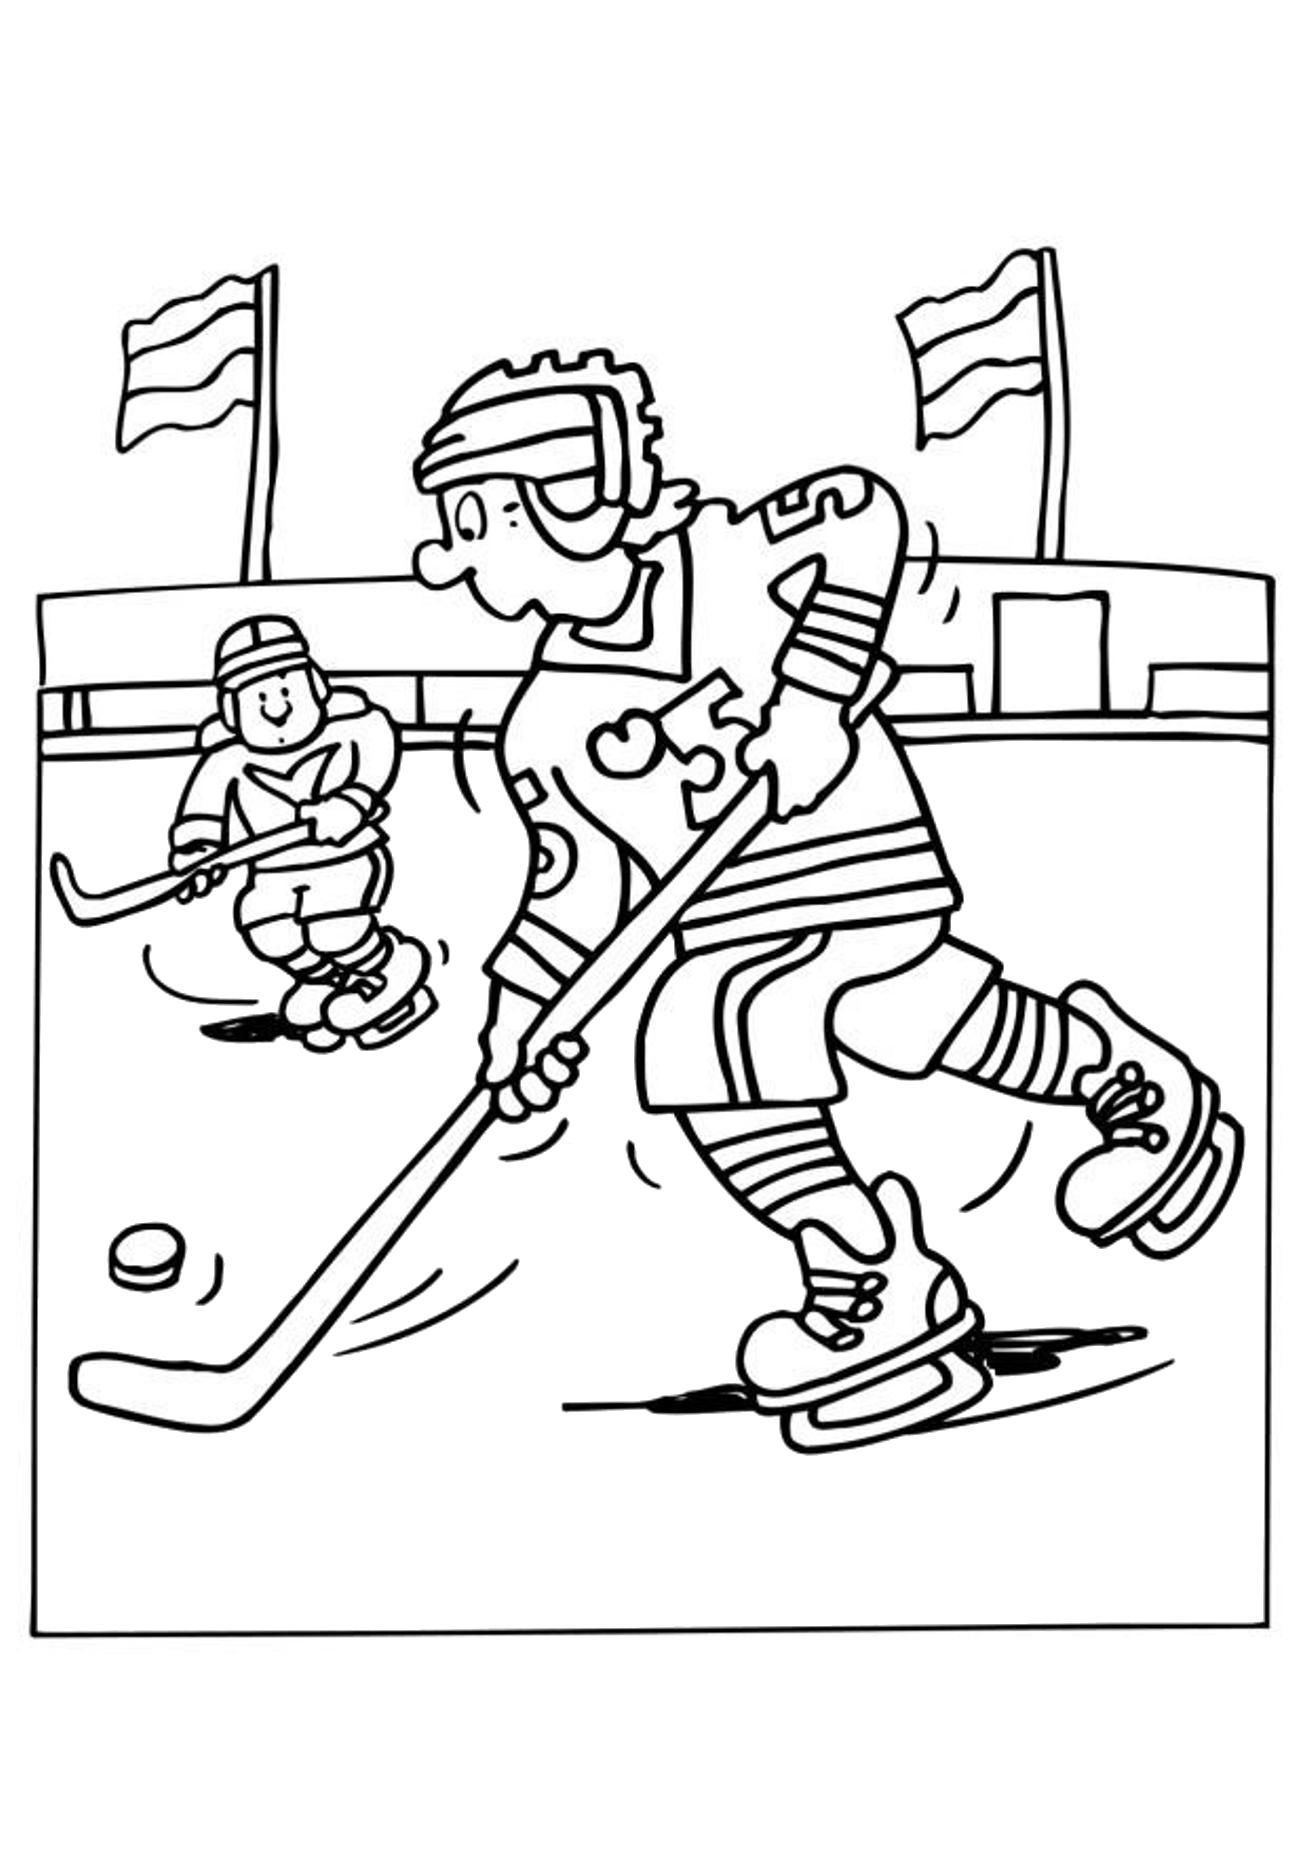 winter sports coloring pages trying to get past the opponent hockey sports coloring pages sports winter coloring